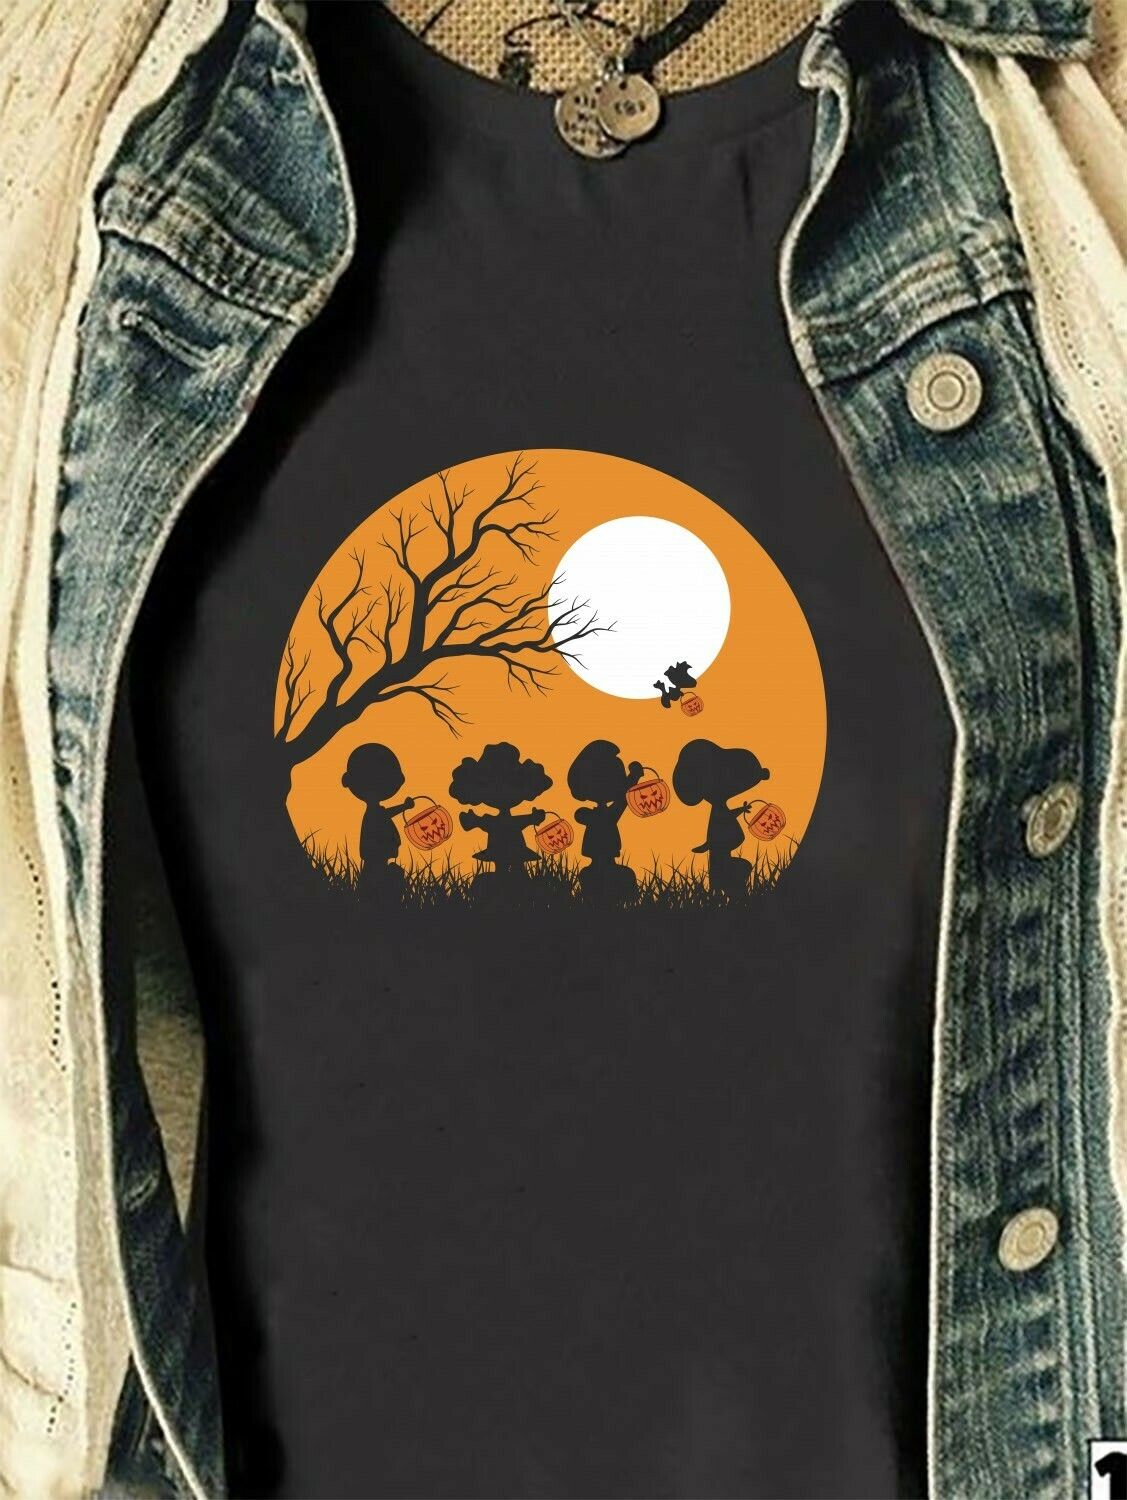 Snoopy, Peanuts And Friends Trick Or Treat Halloween Walk Under The Moon Halloween Costume Gifts for Best Friend Family Vacation T-Shirt Long Sleeve Sweatshirt Hoodie Jolly Family Gifts